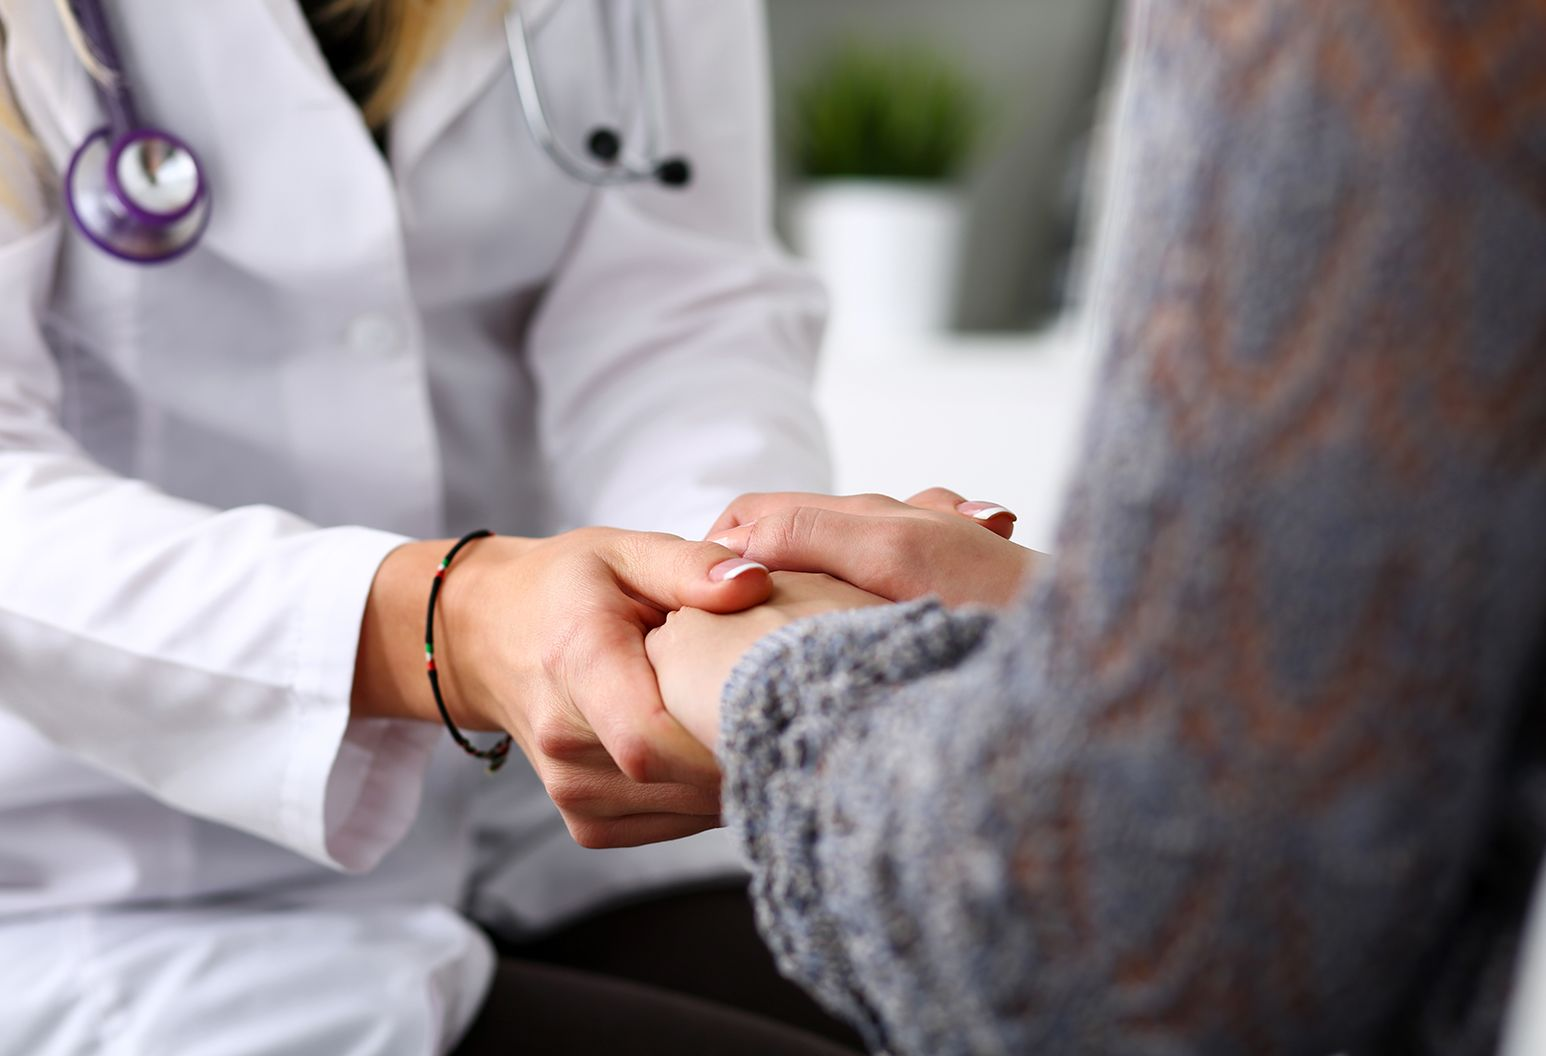 With only hands visible, female doctor with white lab coat and stethoscope is shown holding hands with female patient.